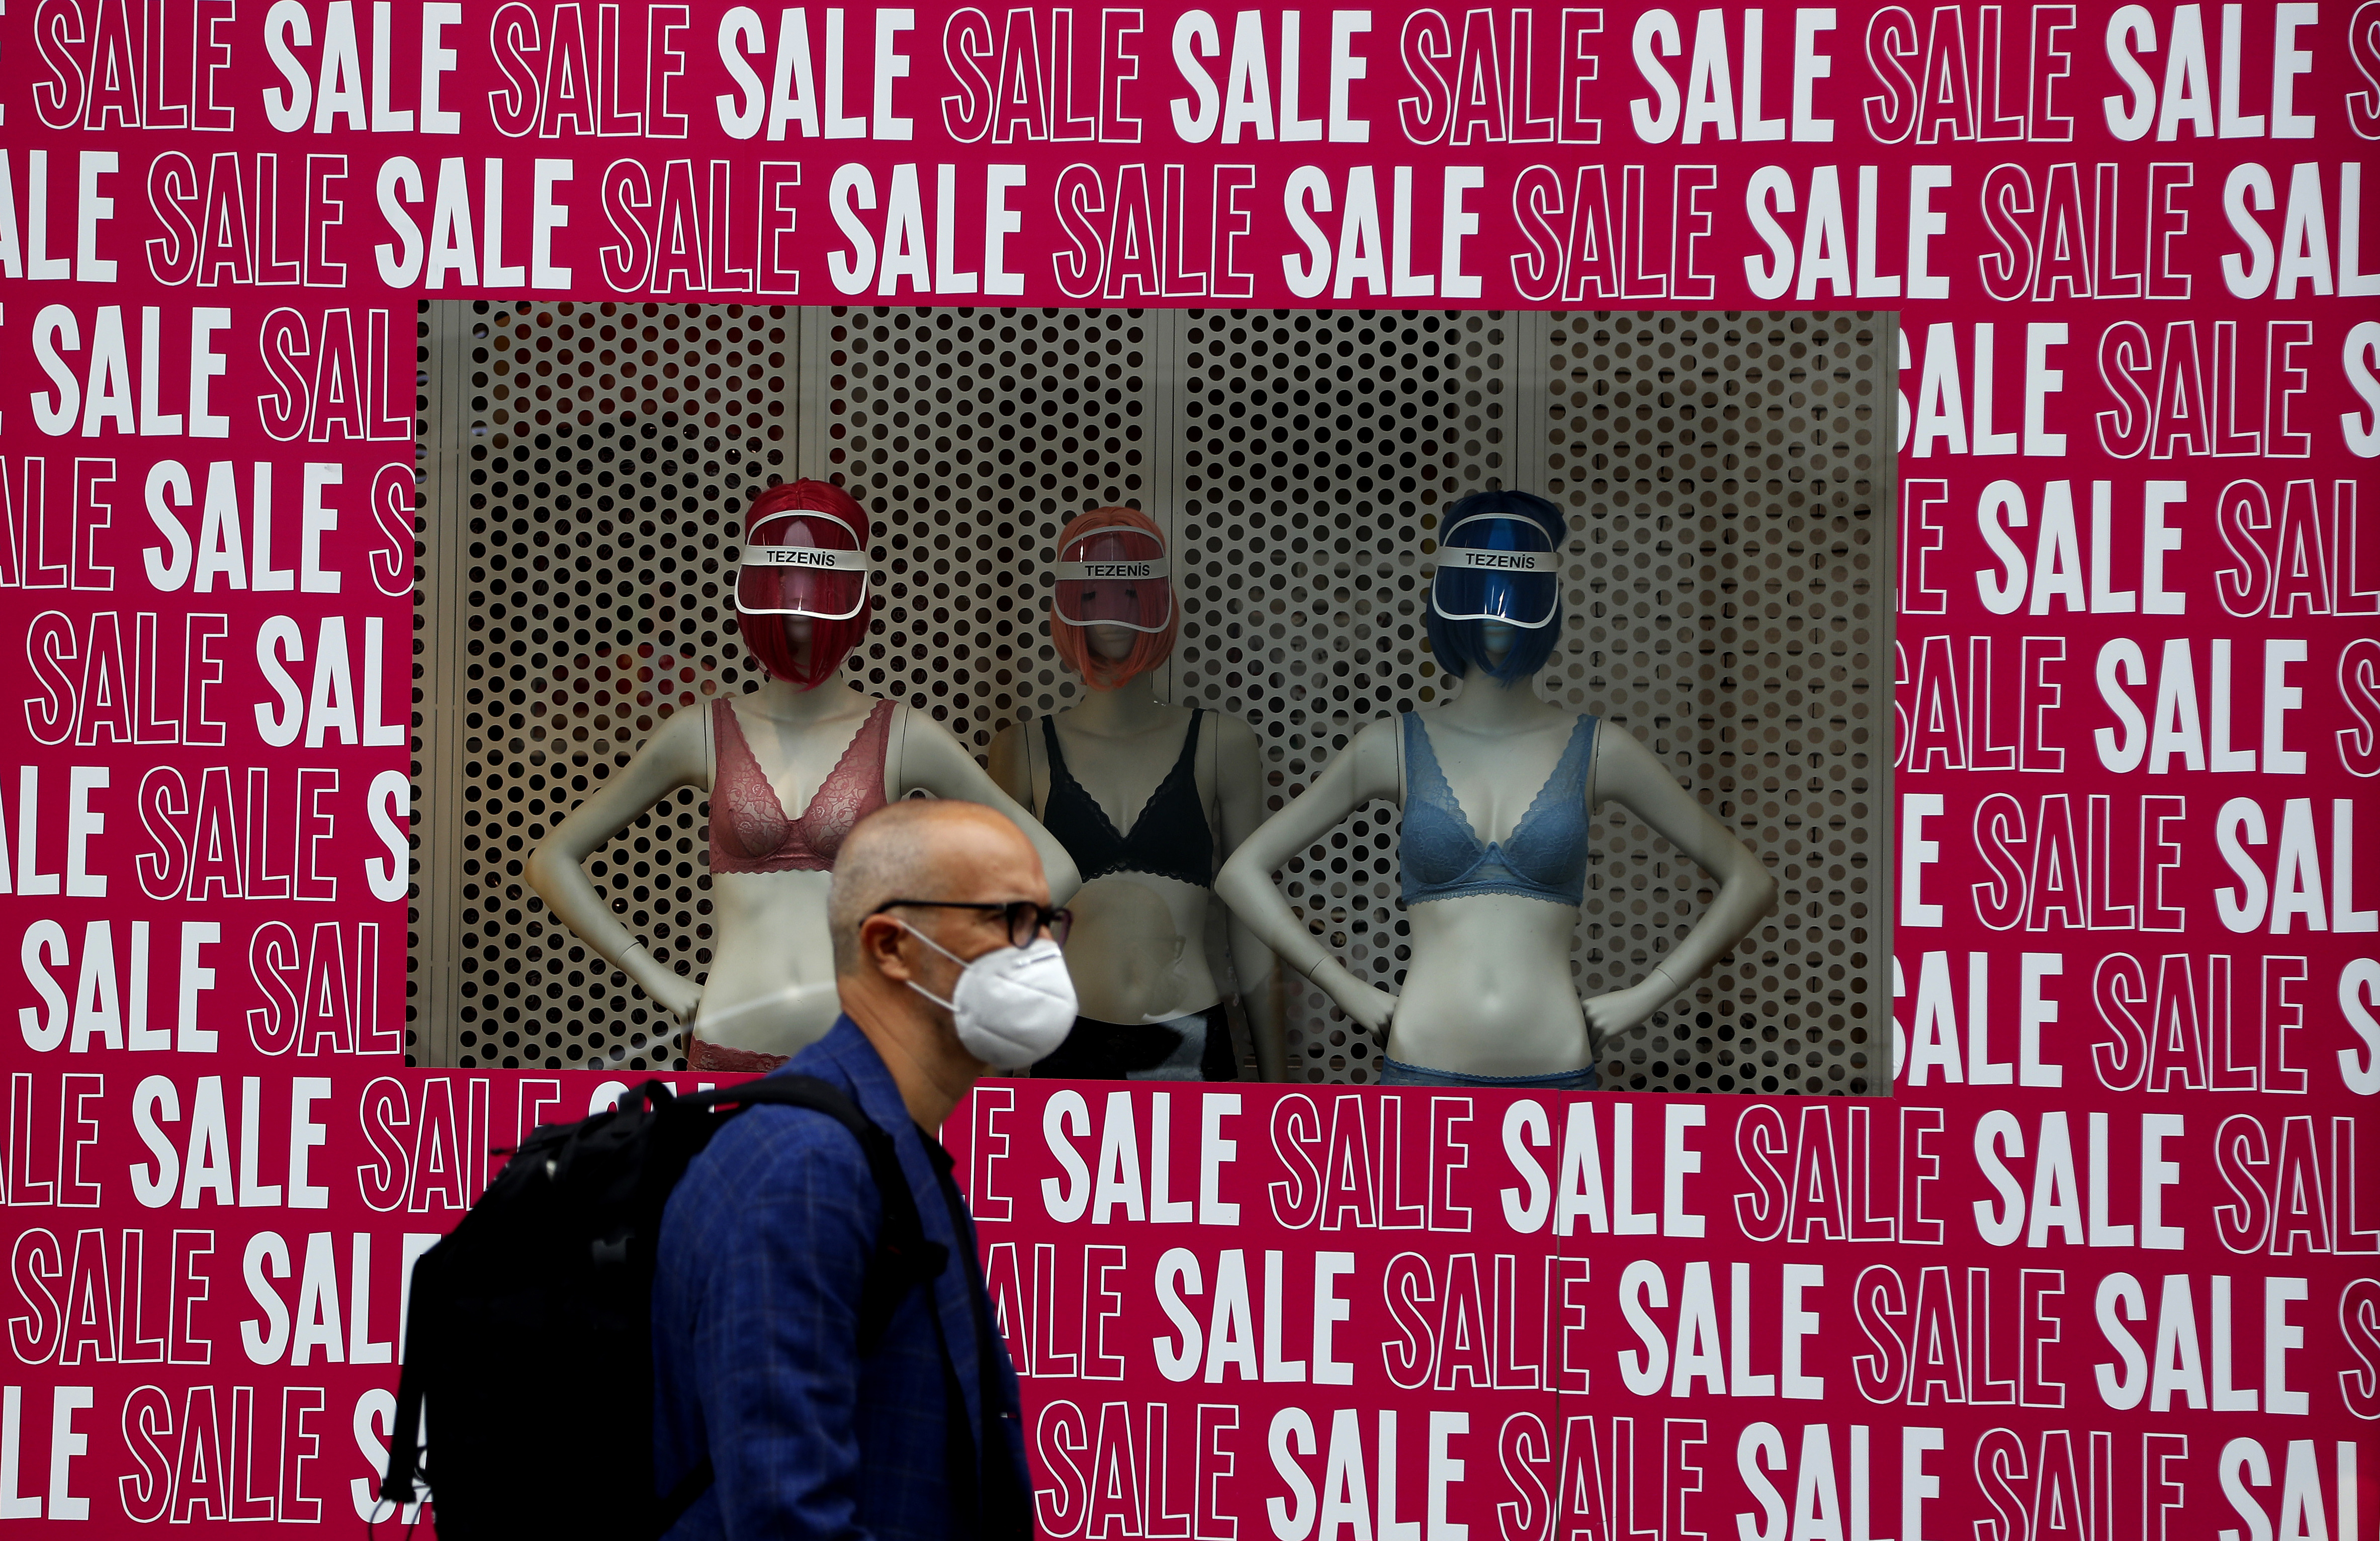 A man wearing a protective face mask walks past a shop window in London, Tuesday, July 14, 2020. Britain's government is demanding people wear face coverings in shops as it has sought to clarify its message after weeks of prevarication amid the COVID-19 pandemic. (AP Photo/Frank Augstein)